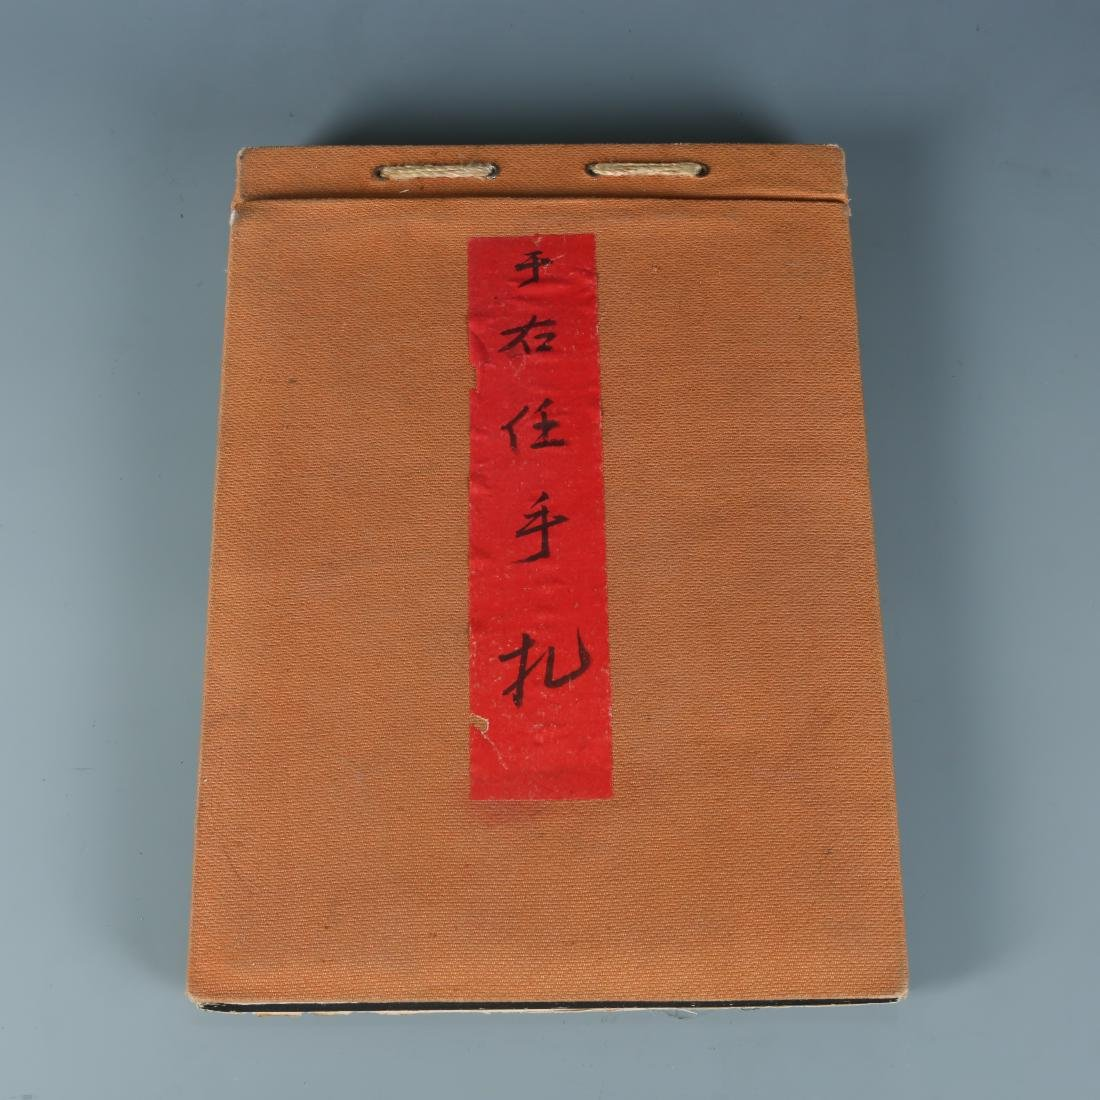 YU YOUREN, Letters Written in Running Script